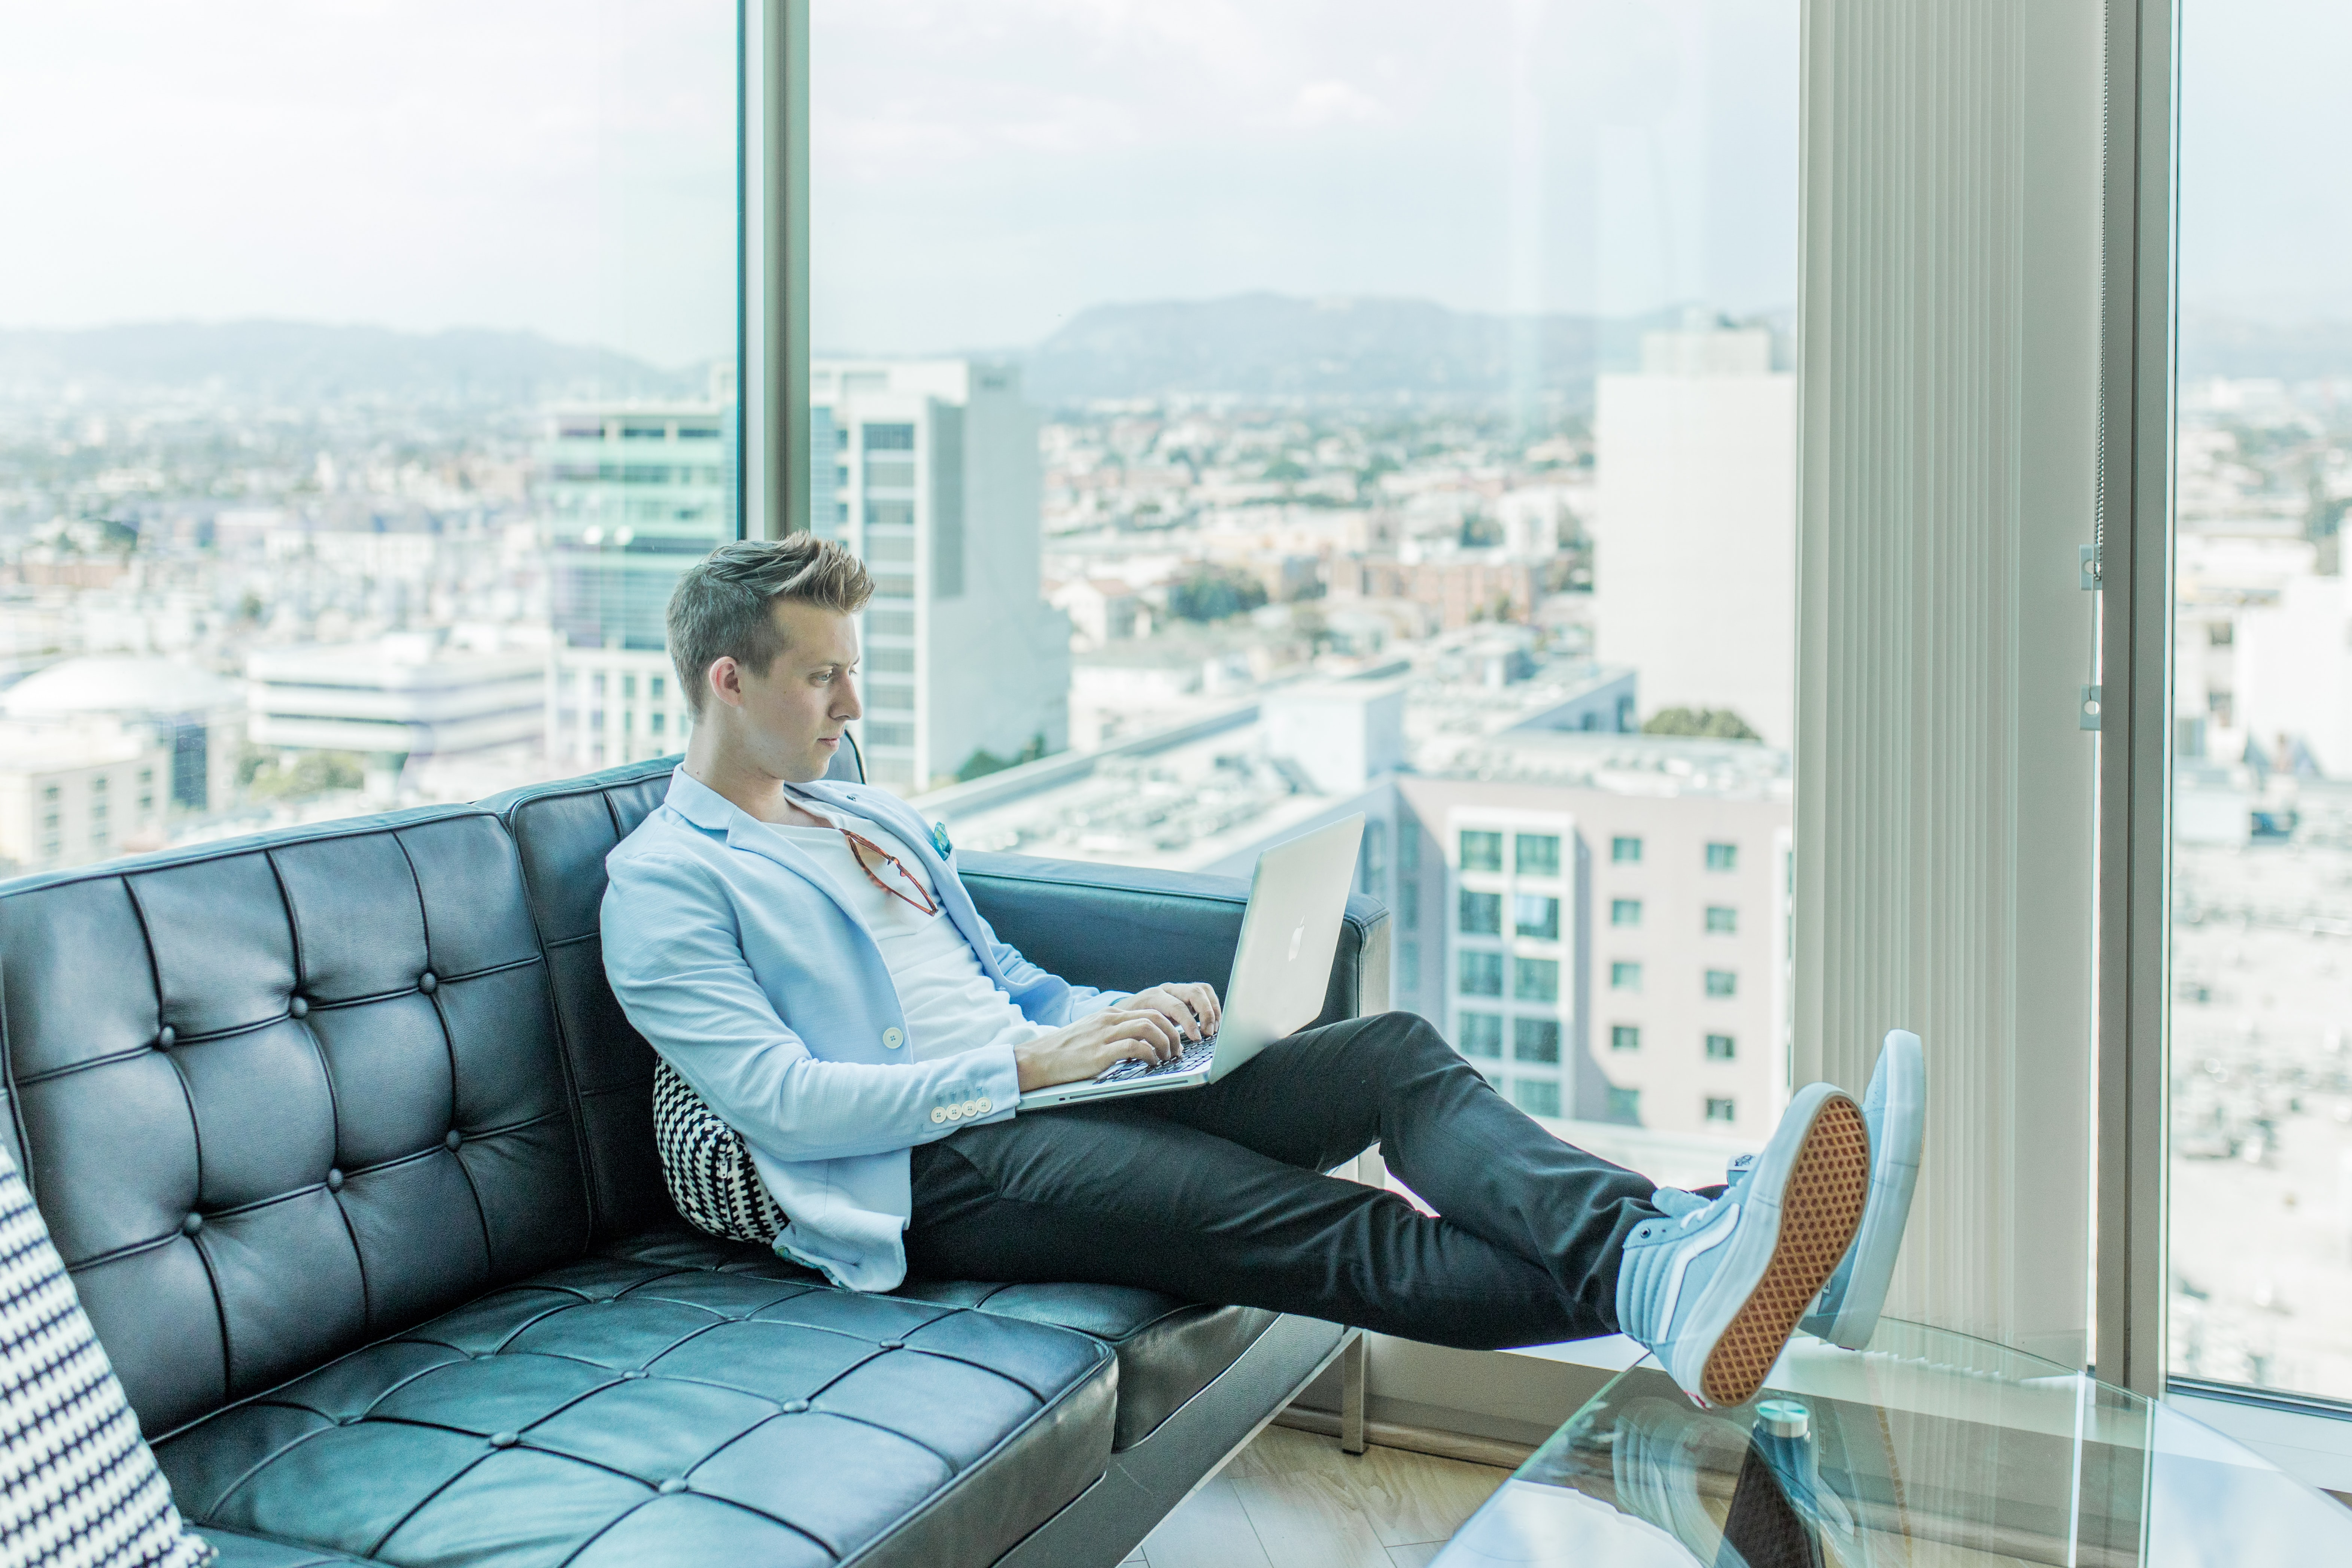 A young man sitting on a black leather couch, feet up, with his MacBook on his lap; working. Behind him, we can see the city through the windows